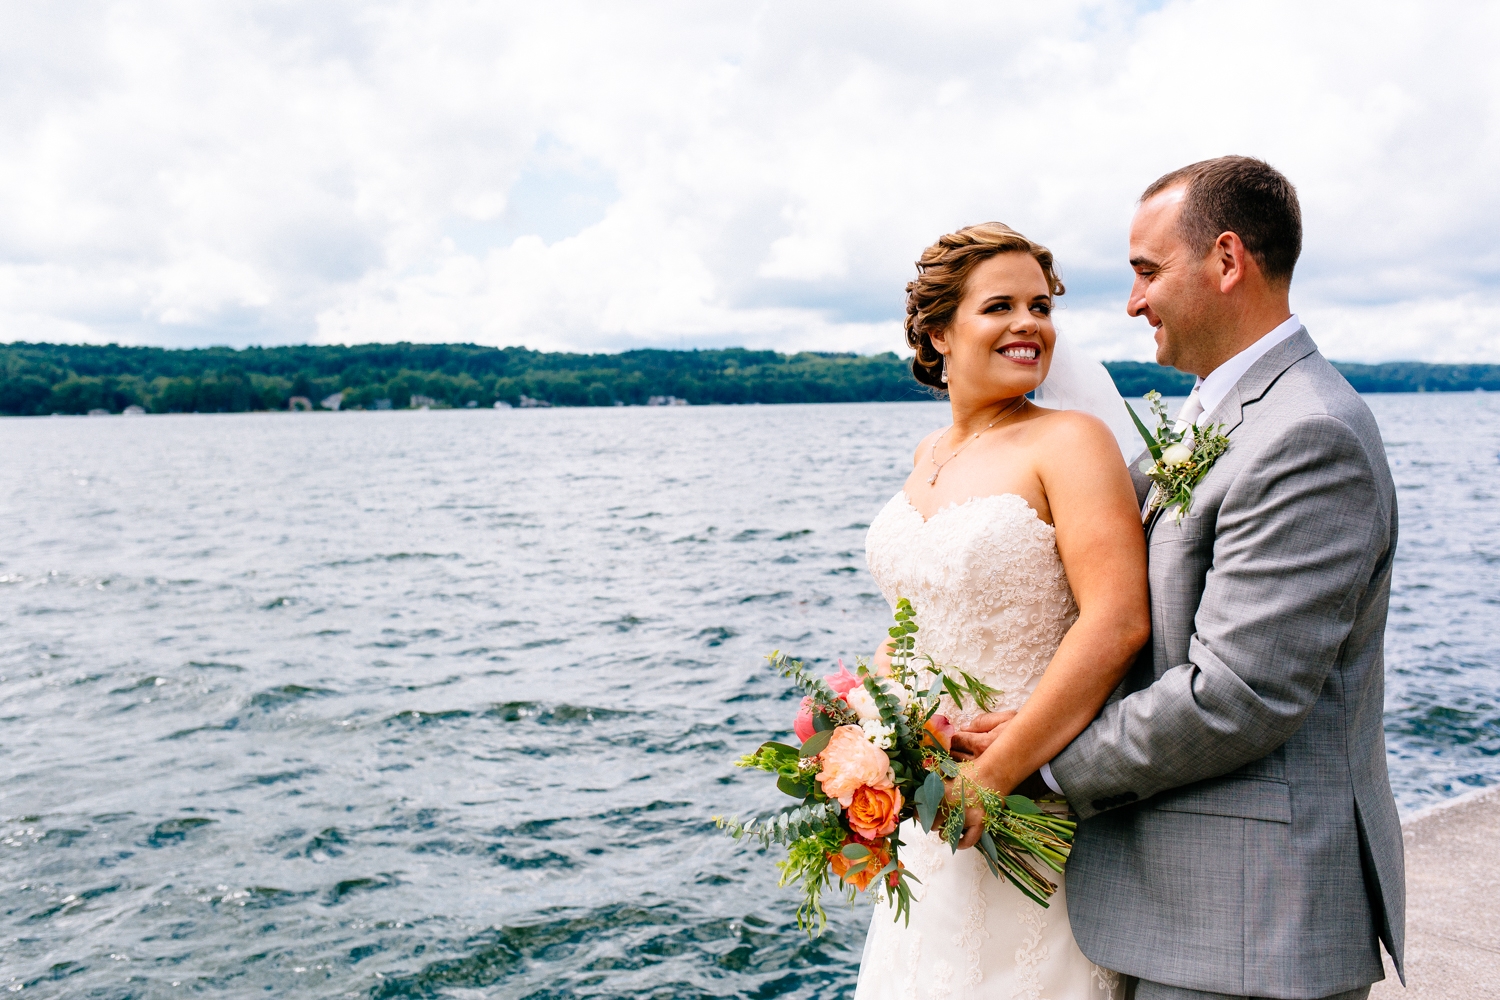 Bride and groom stand in front of Cazenovia Lake. Bride looks back at groom and smiles.